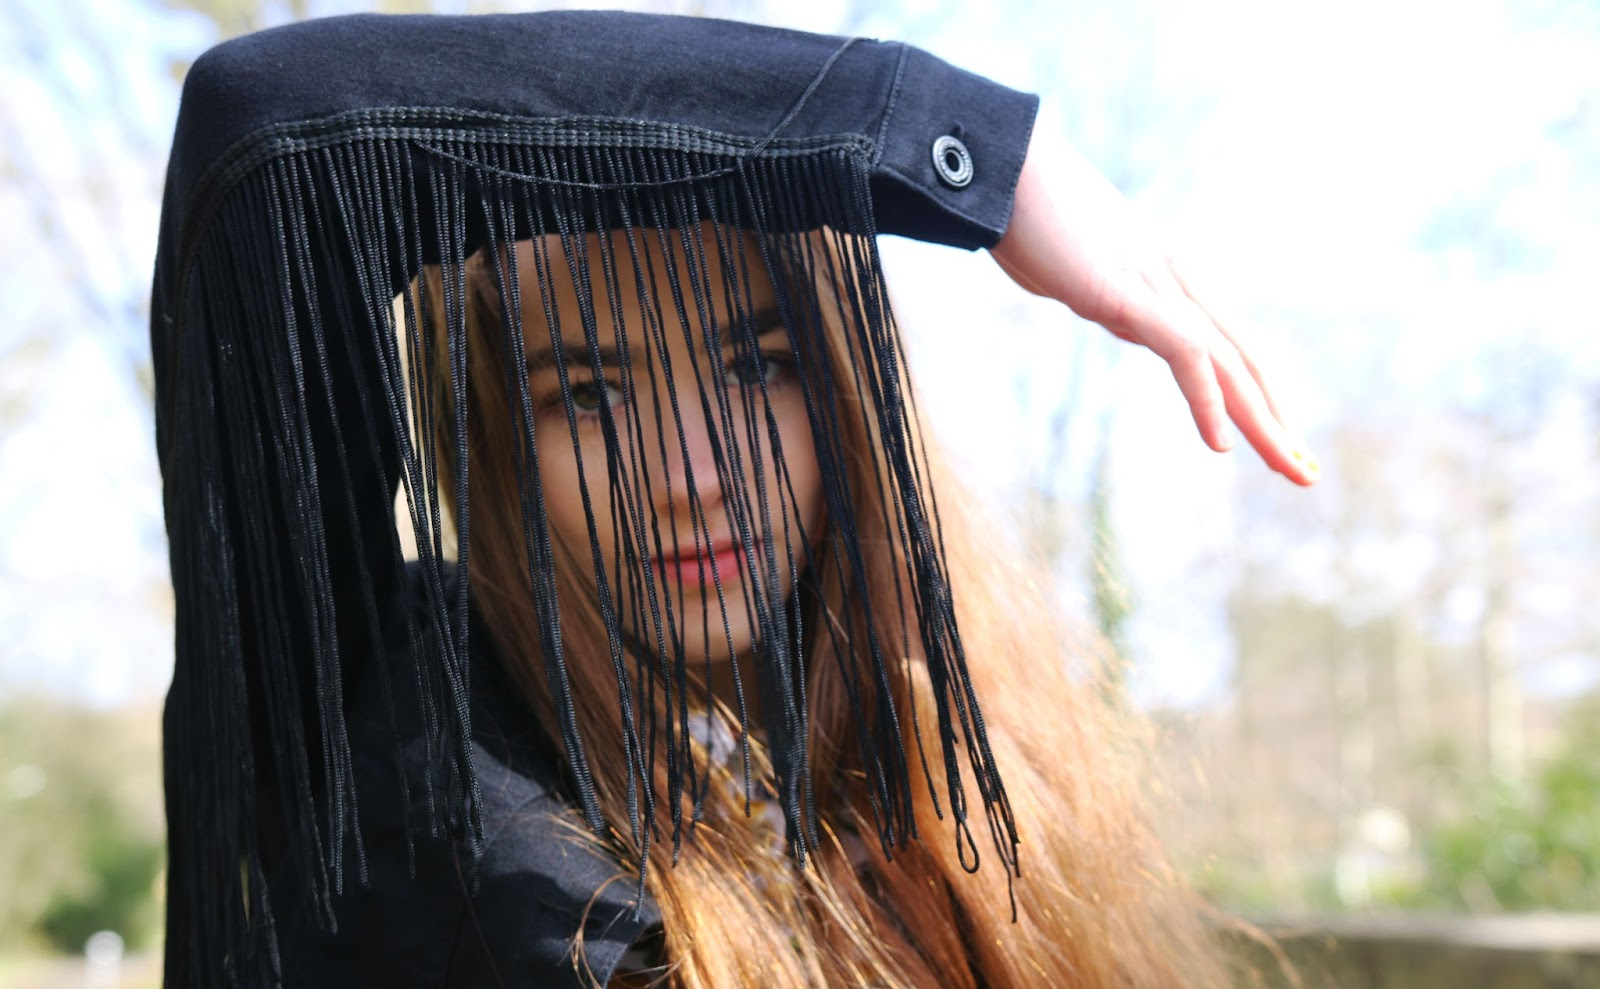 tassle, jacket, summer, LA, OTTD, Amelia, Model, posing, black, fringed, tassled, denim, denim jacket, close up, eyebrows